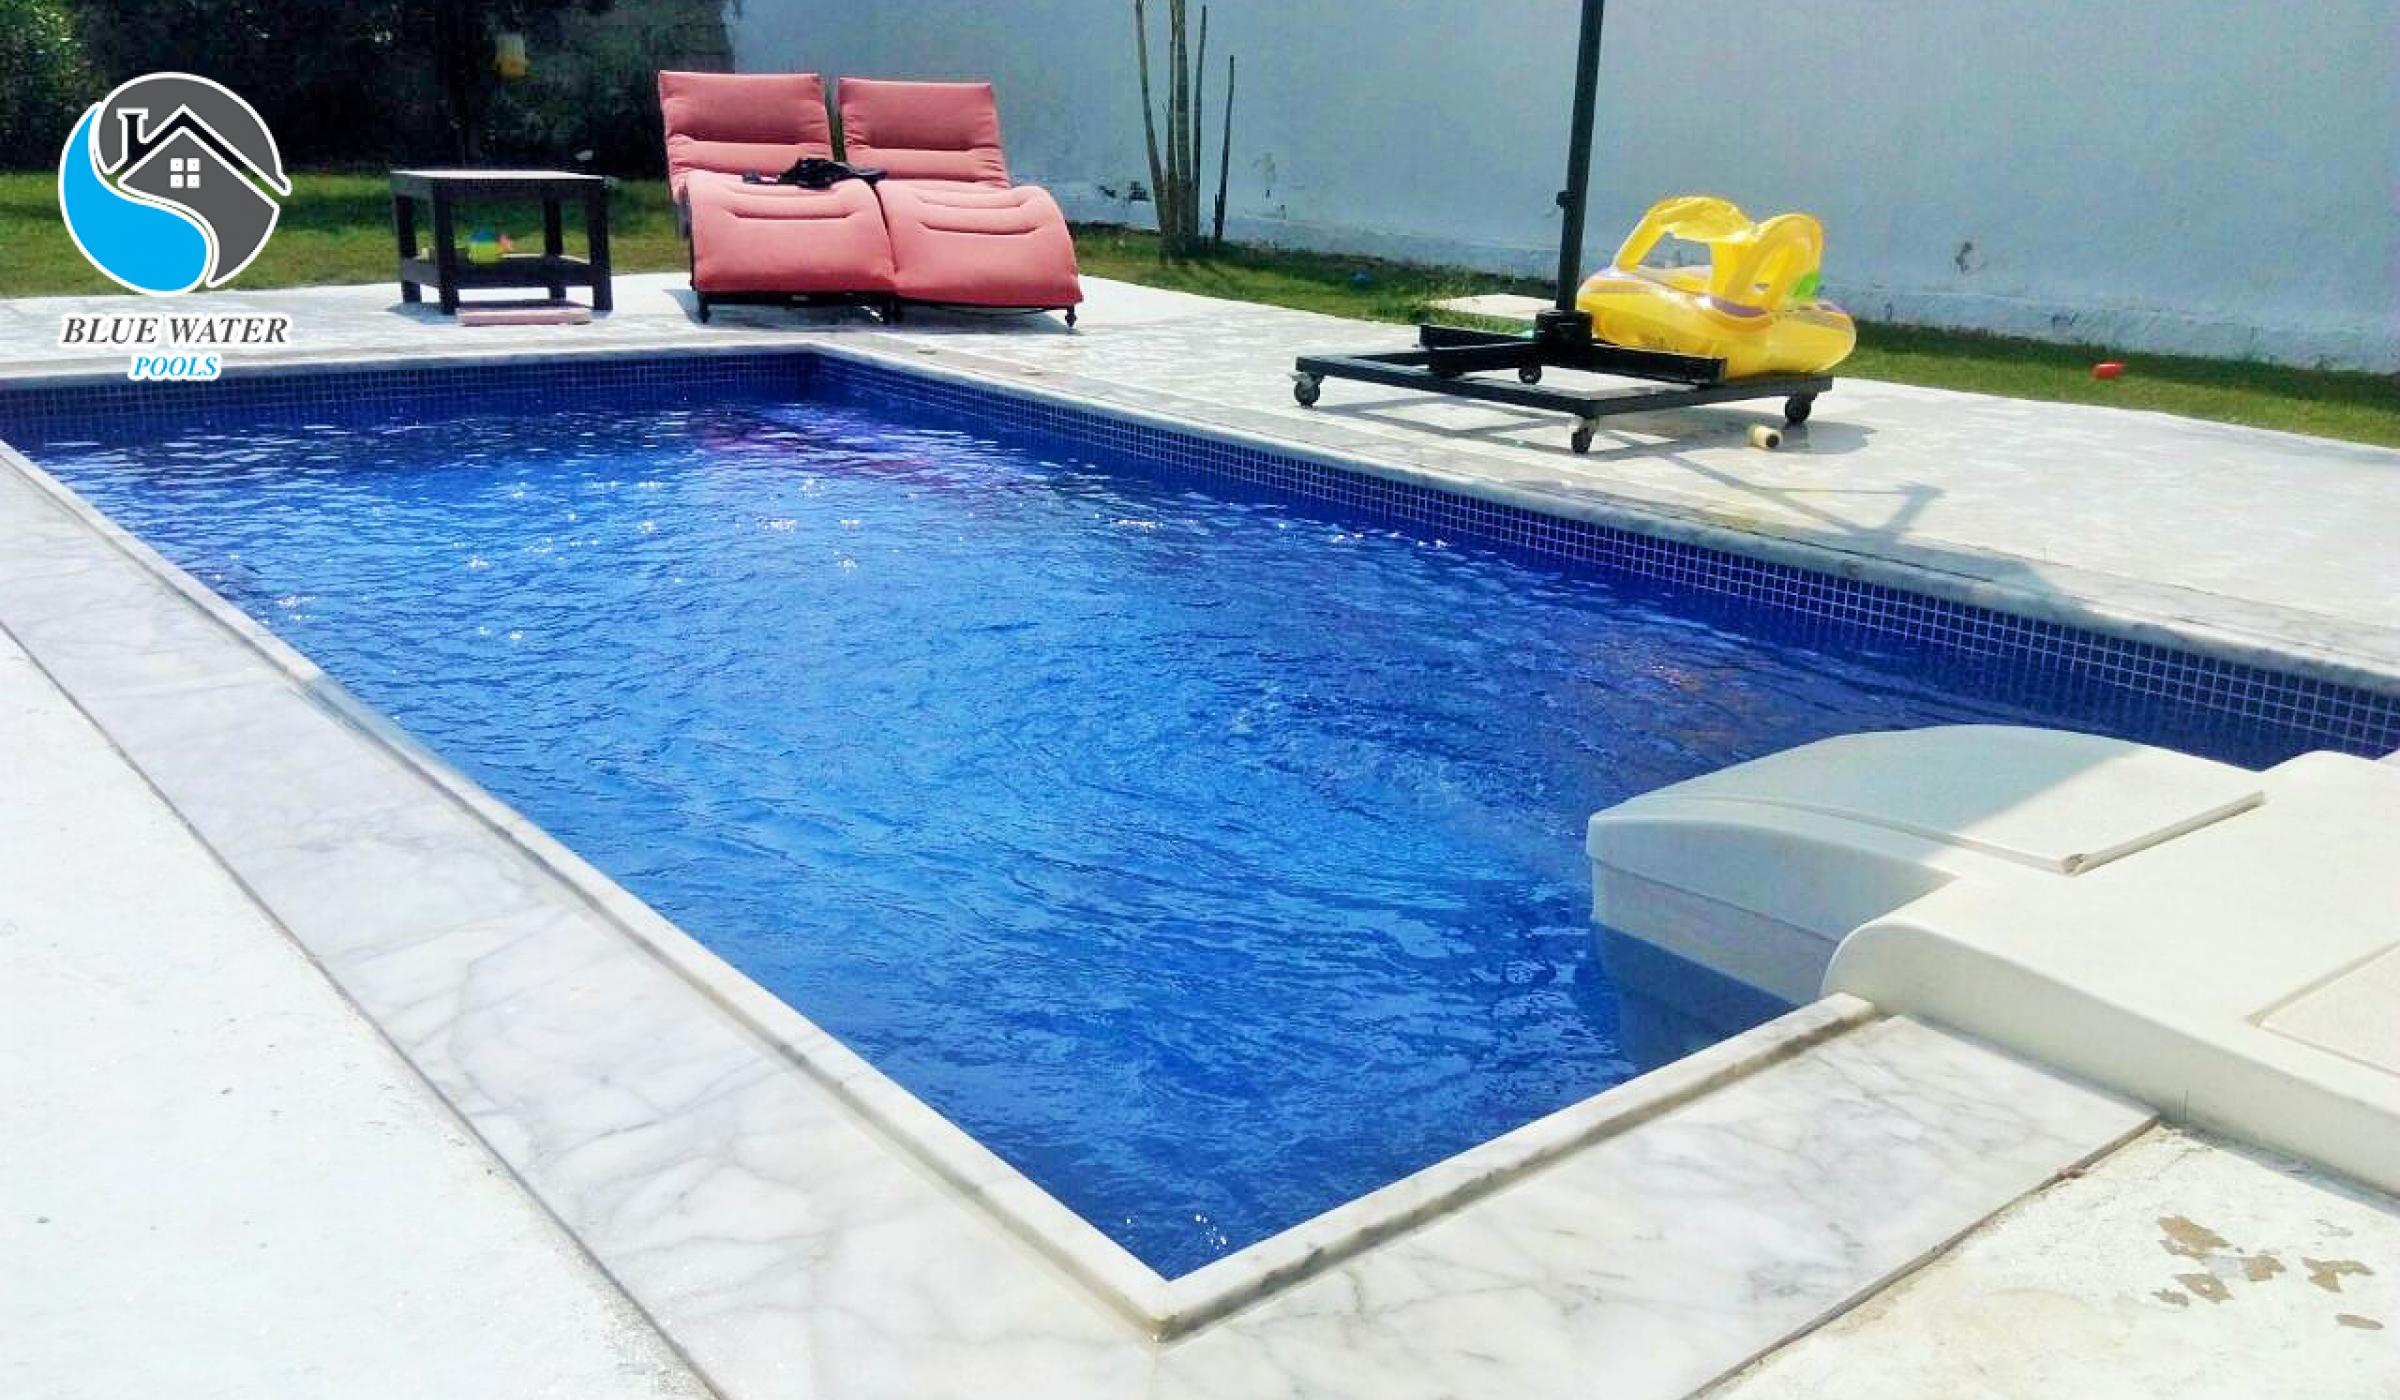 Swimming pool - Jacuzzi